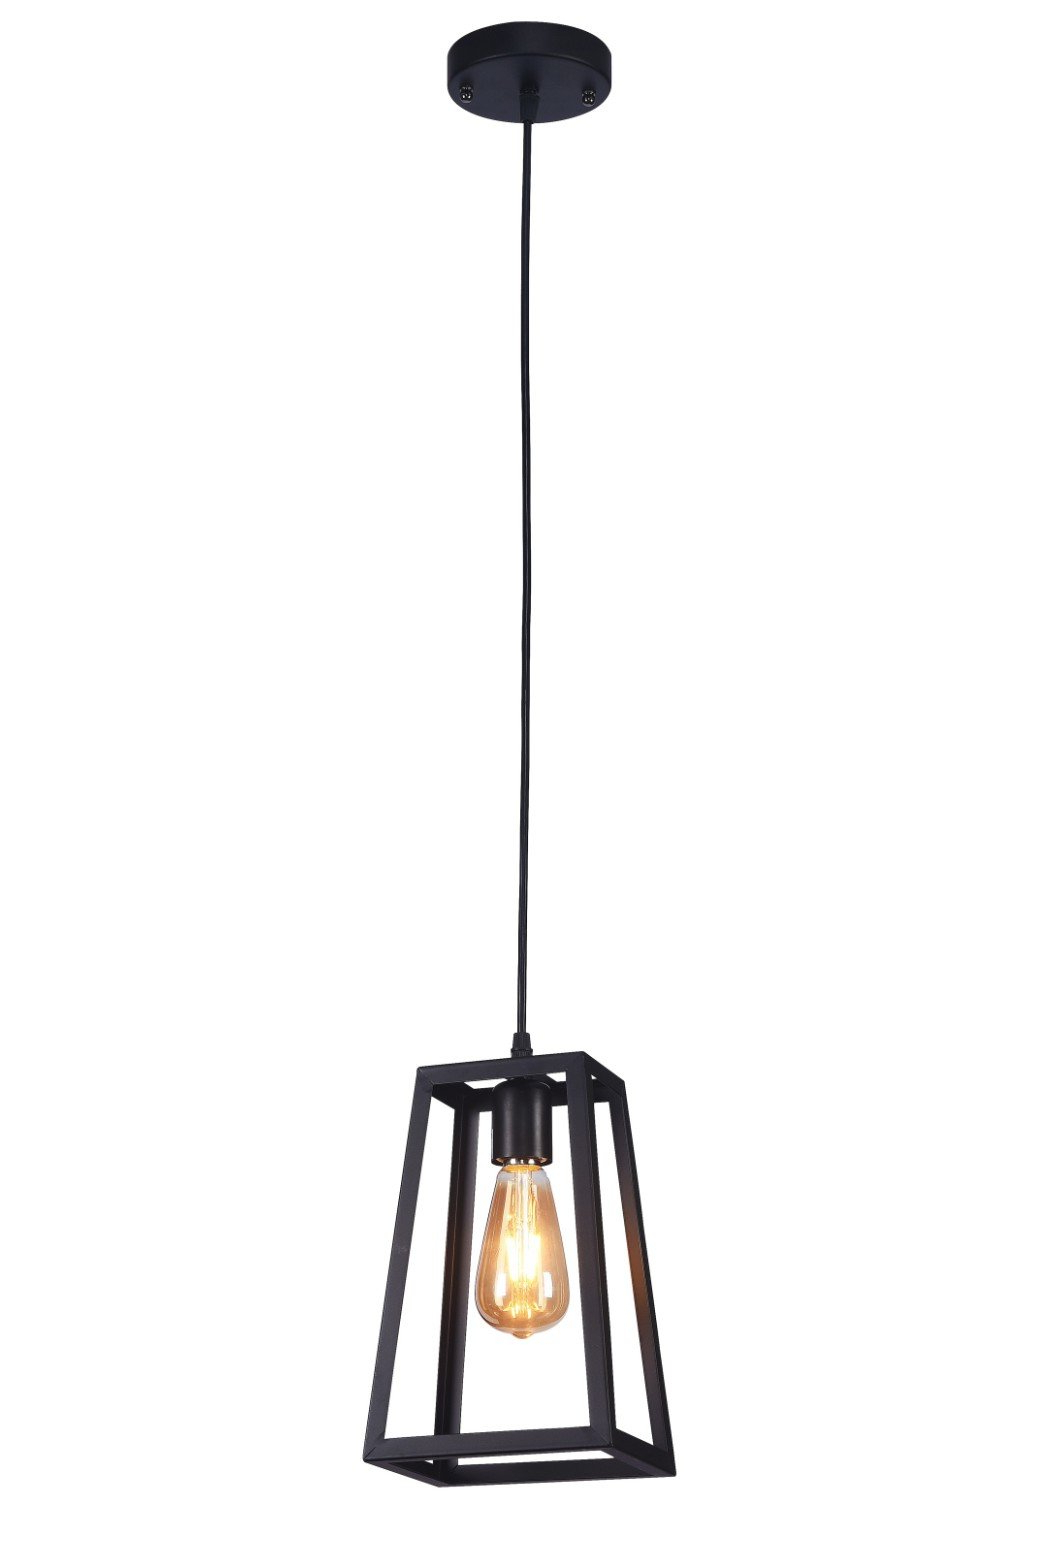 Cabott 1 Light Square/rectangle Pendant Pertaining To Best And Newest Nolan 1 Light Lantern Chandeliers (View 15 of 25)